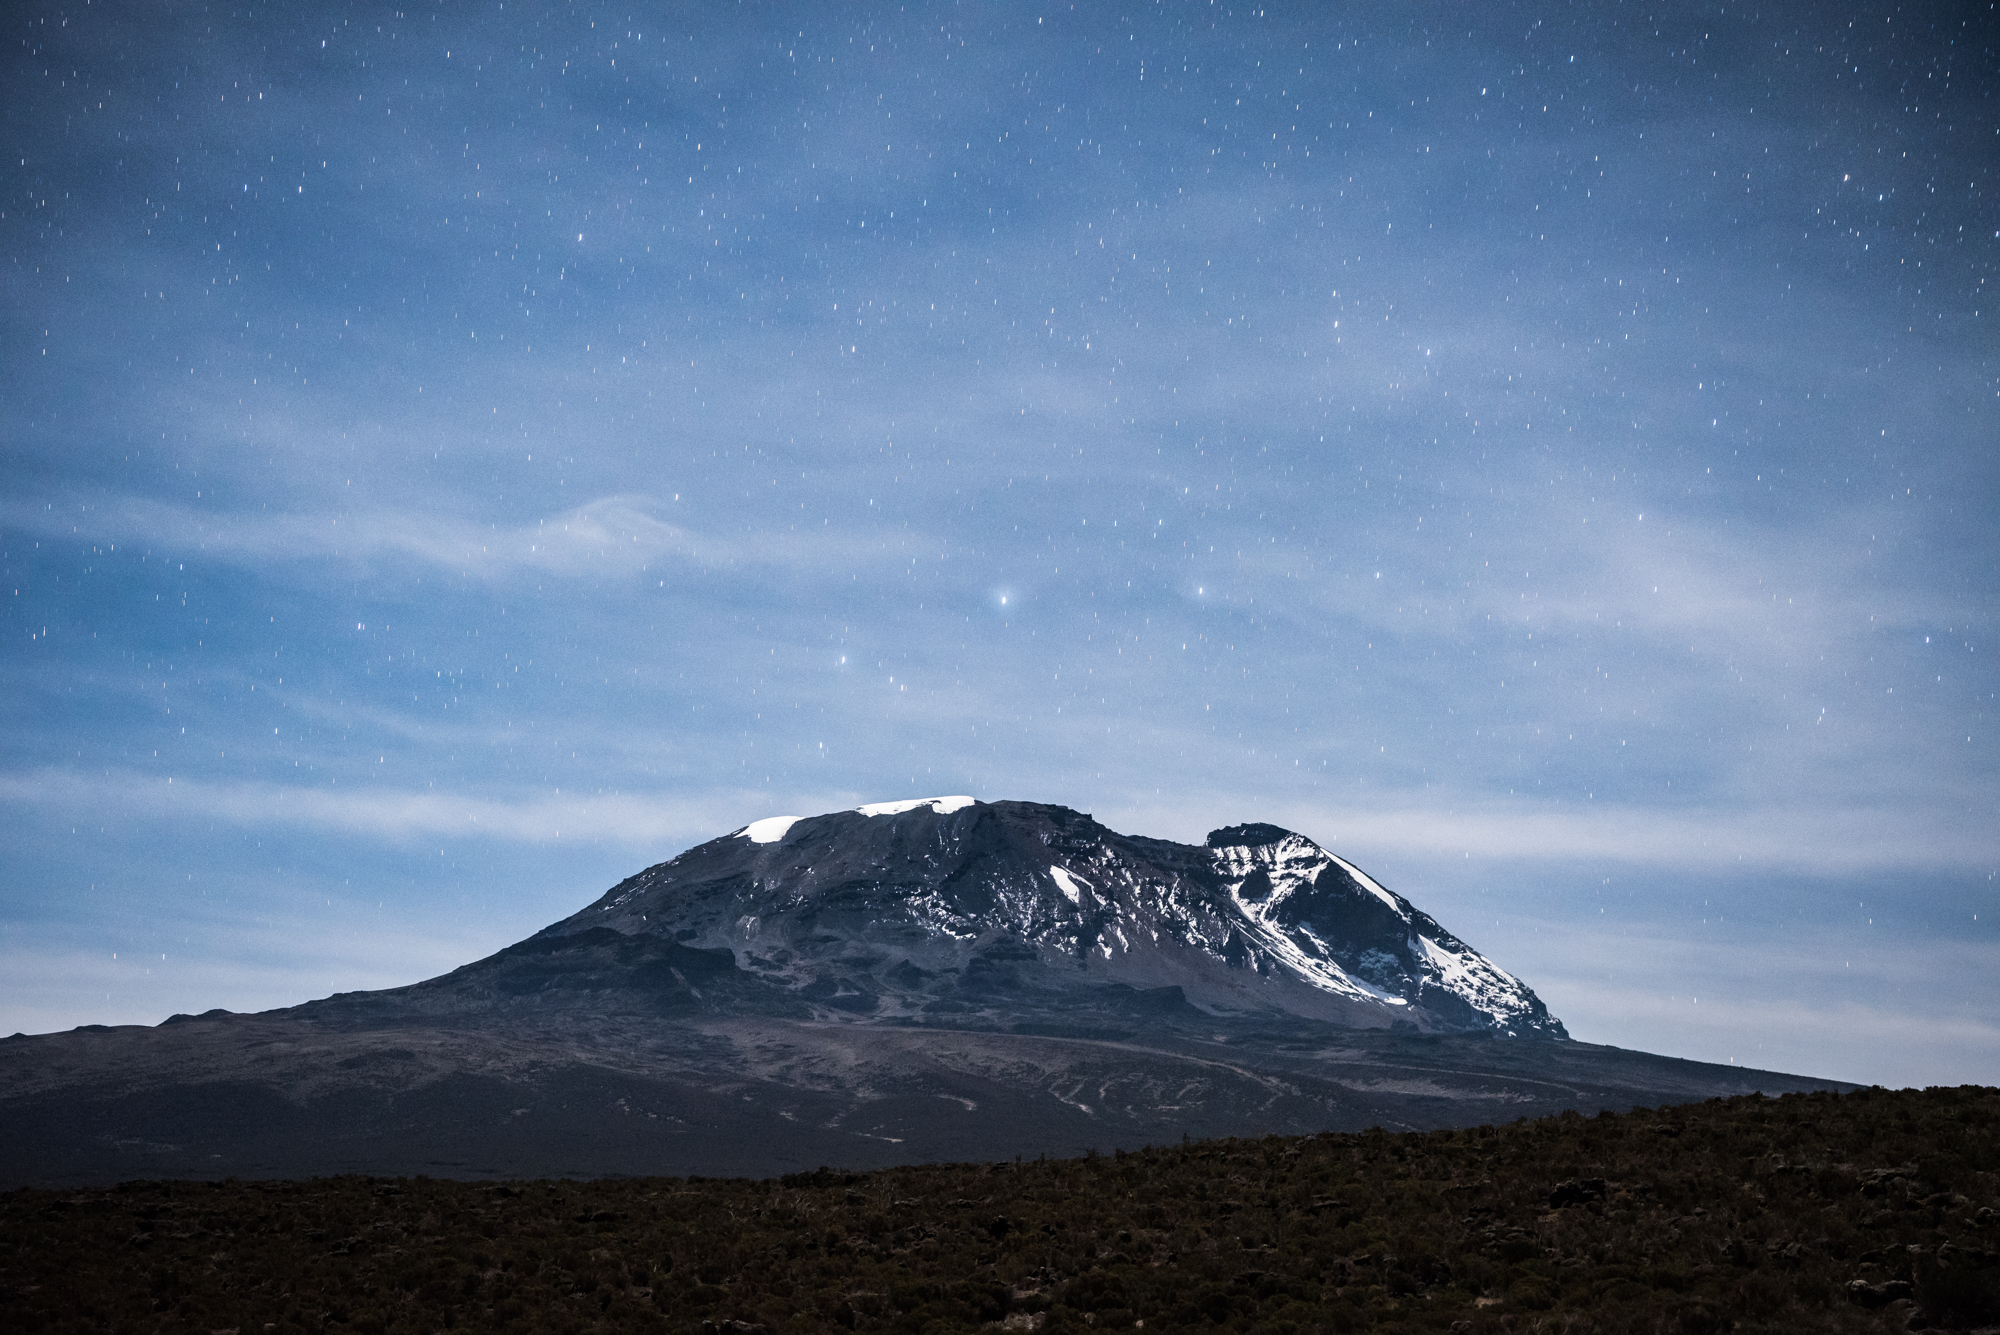 Mount Kilimanjaro under the Big Dipper, photo credit to Taylor Glenn